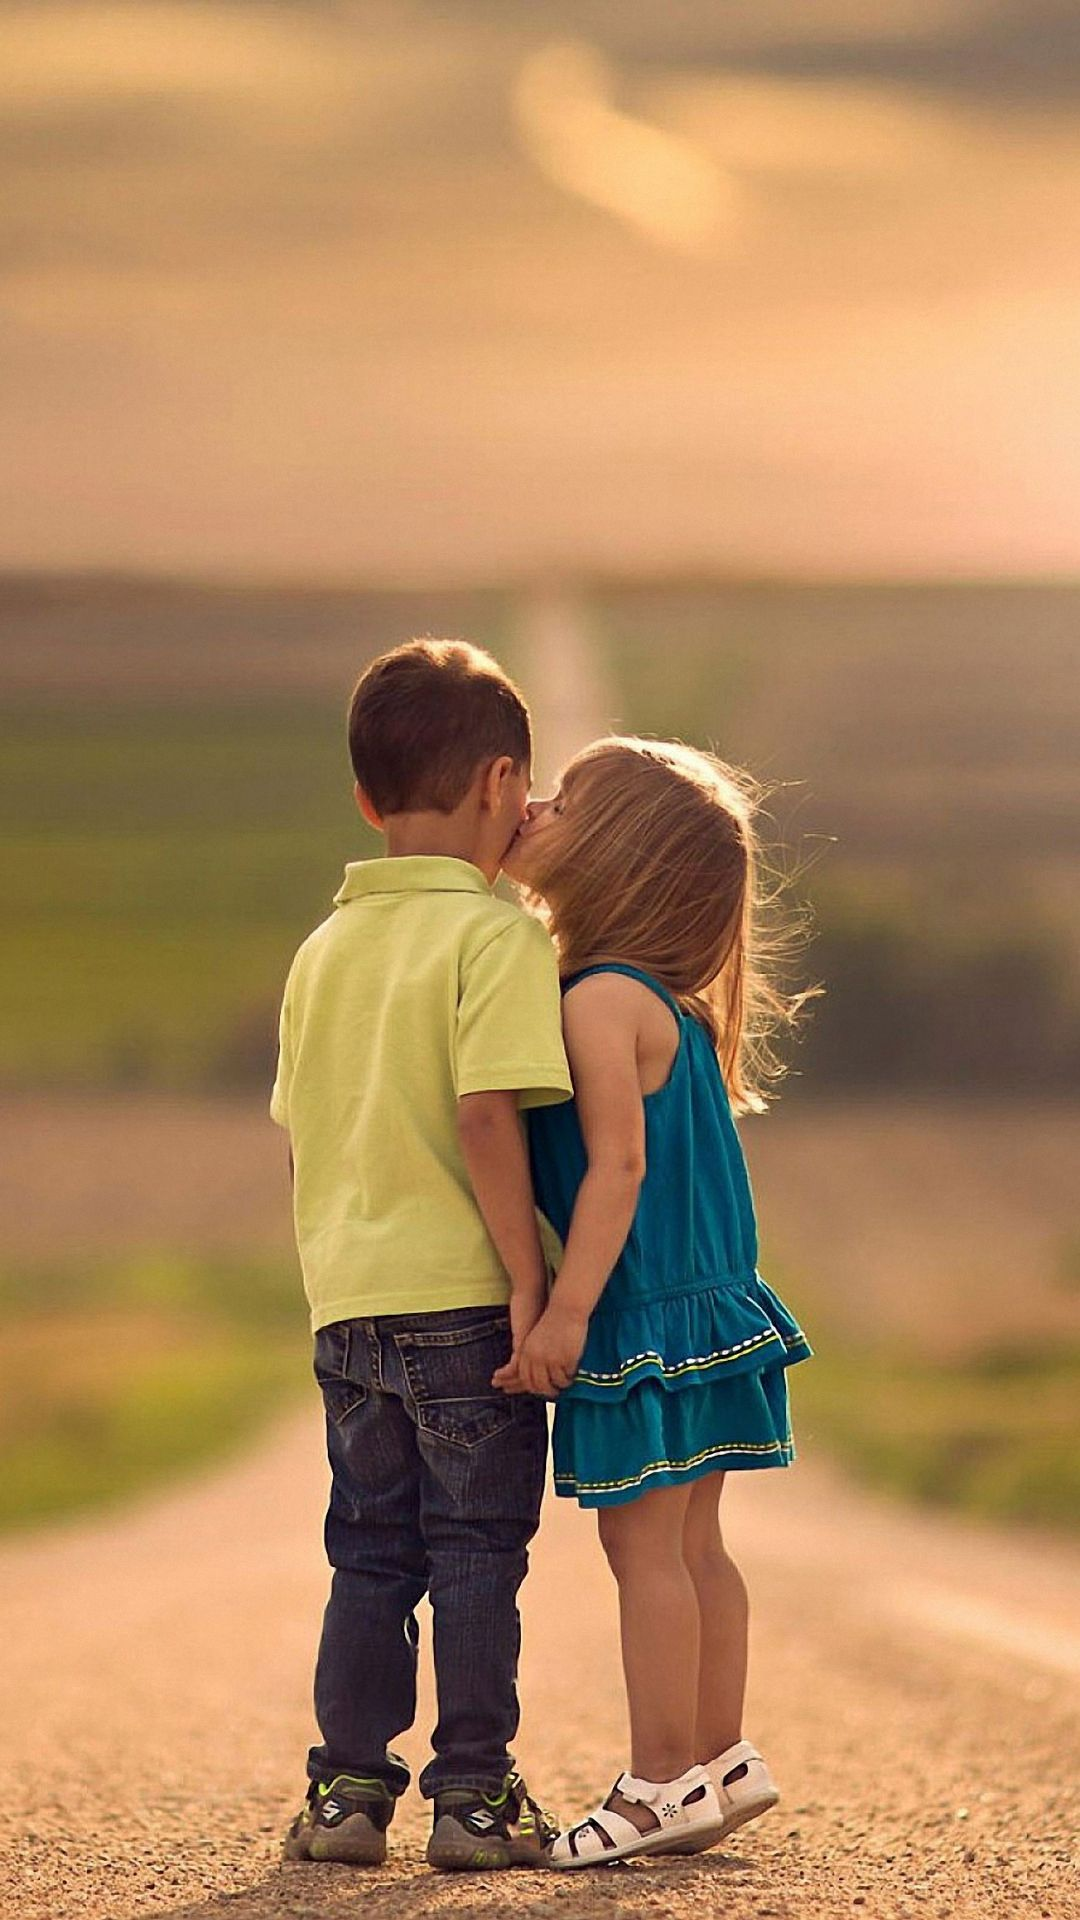 Kissing Hd Wallpapers Download Wallpapers 2020 Cute Love Wallpapers Kids Kiss Cute Couples Kissing